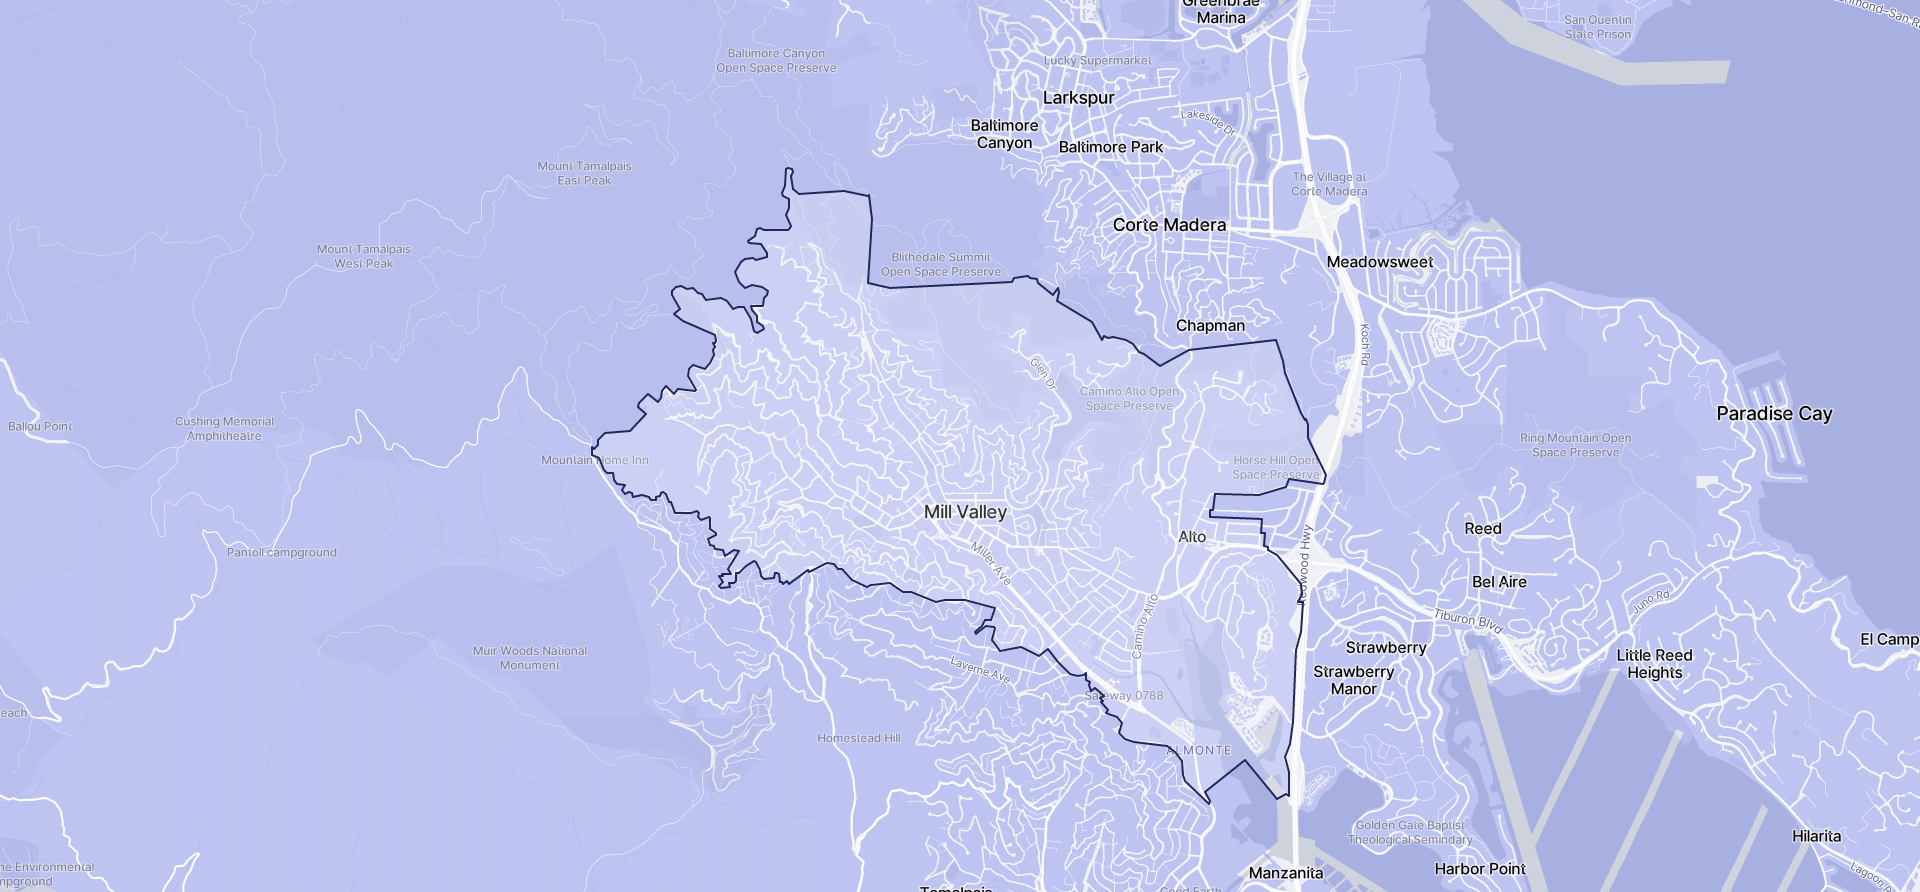 Image of Mill Valley boundaries on a map.